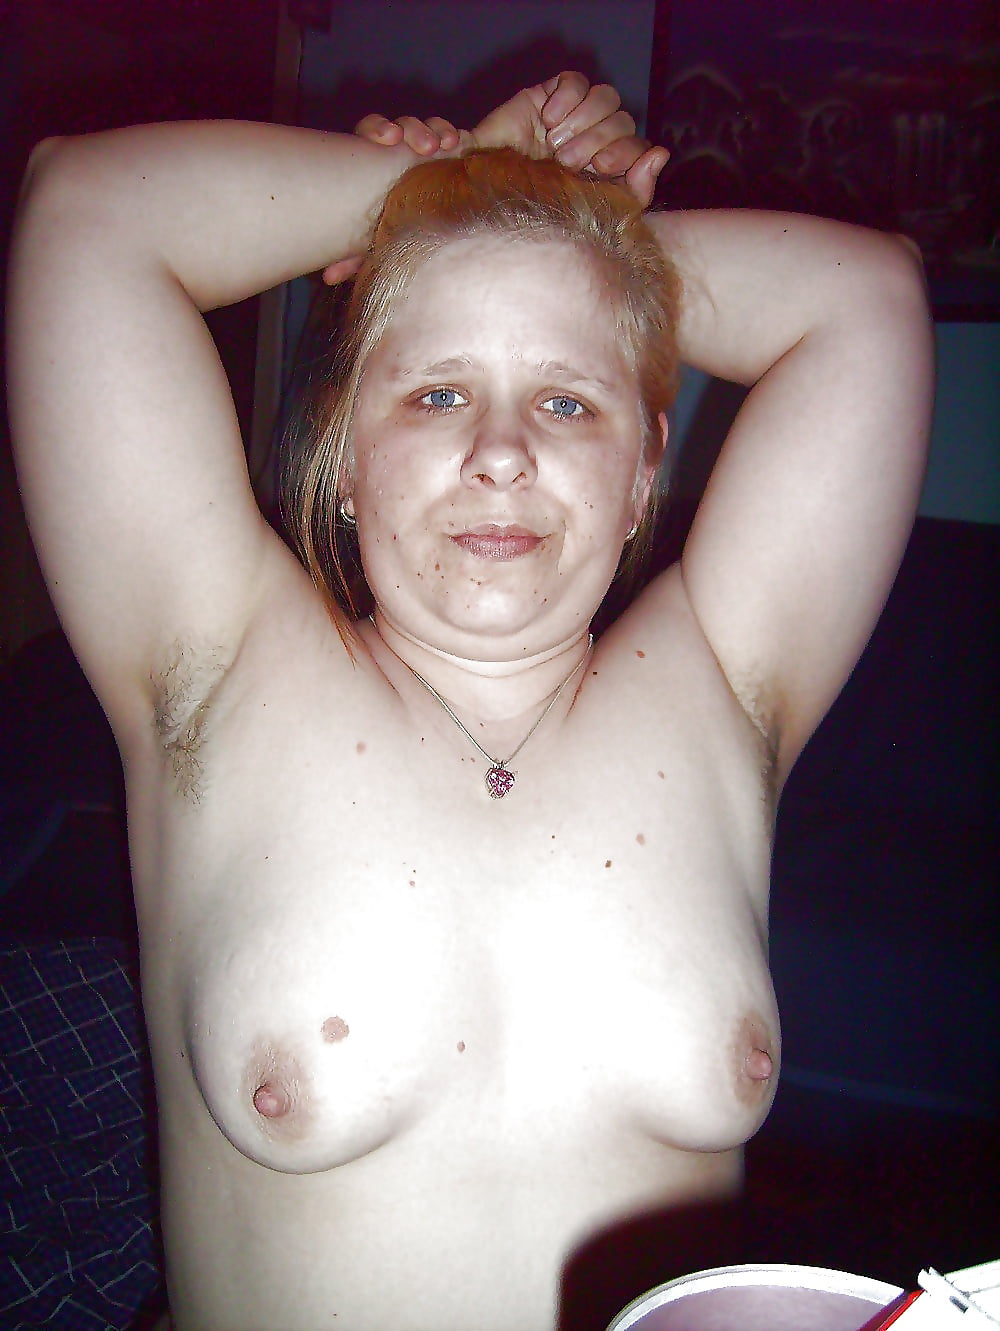 Ugly woman nude picture